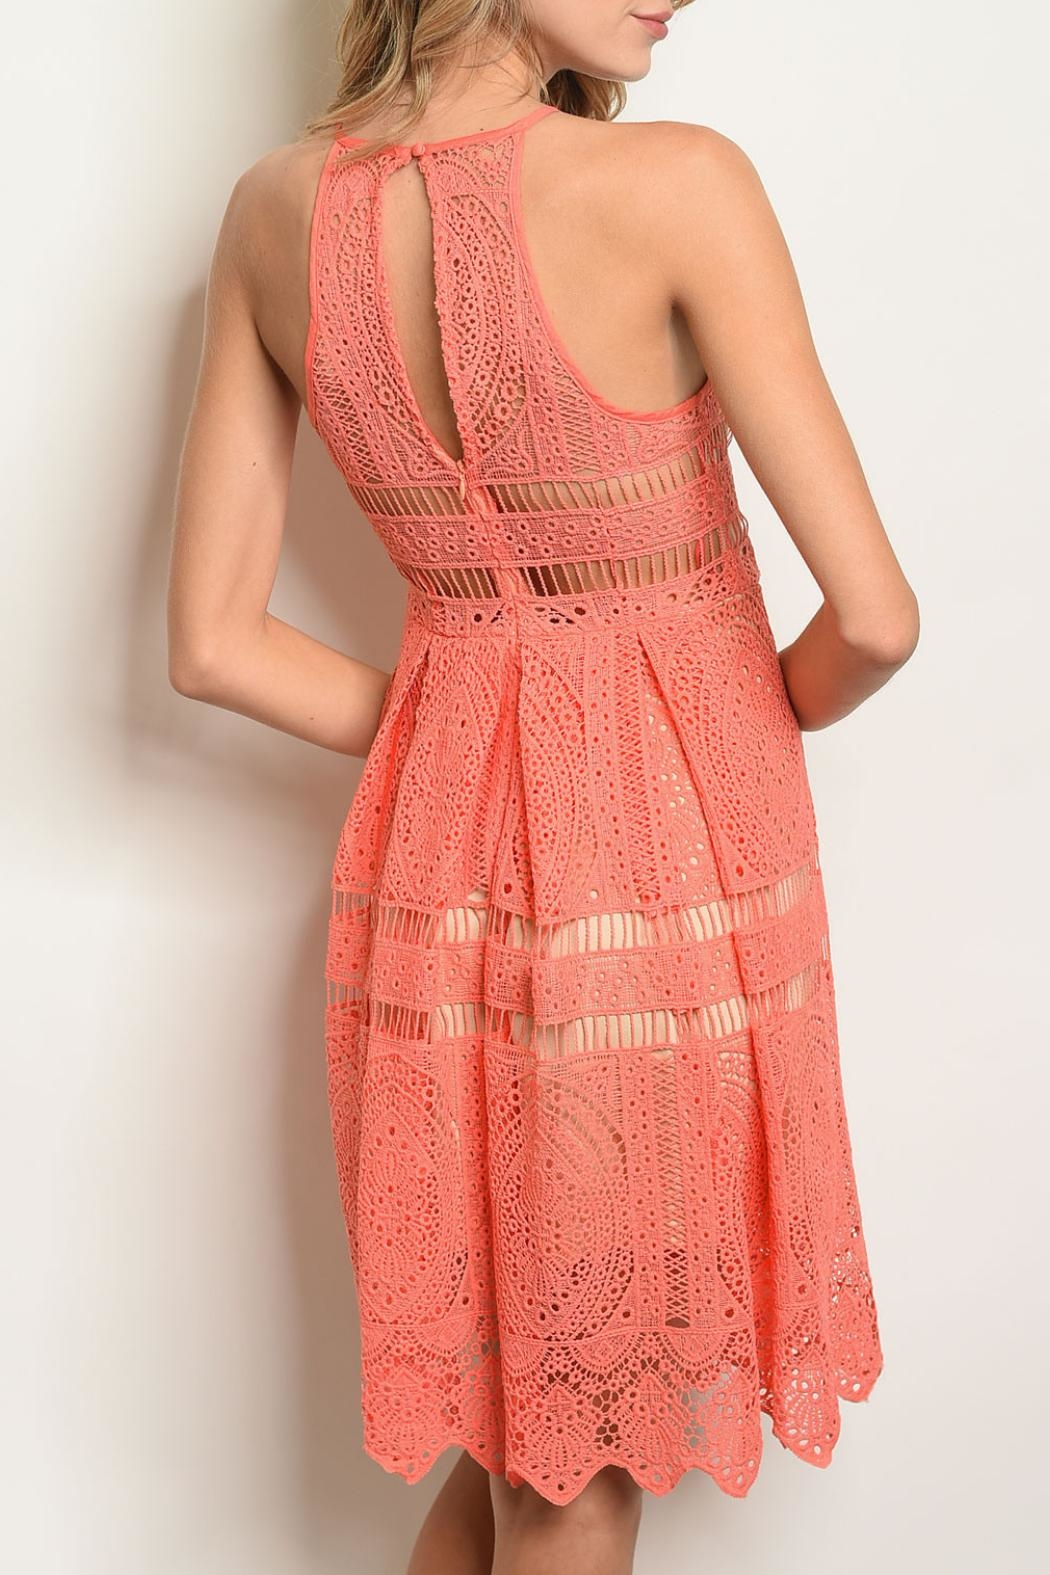 The Vintage Shop Coral Nude Dress - Front Full Image